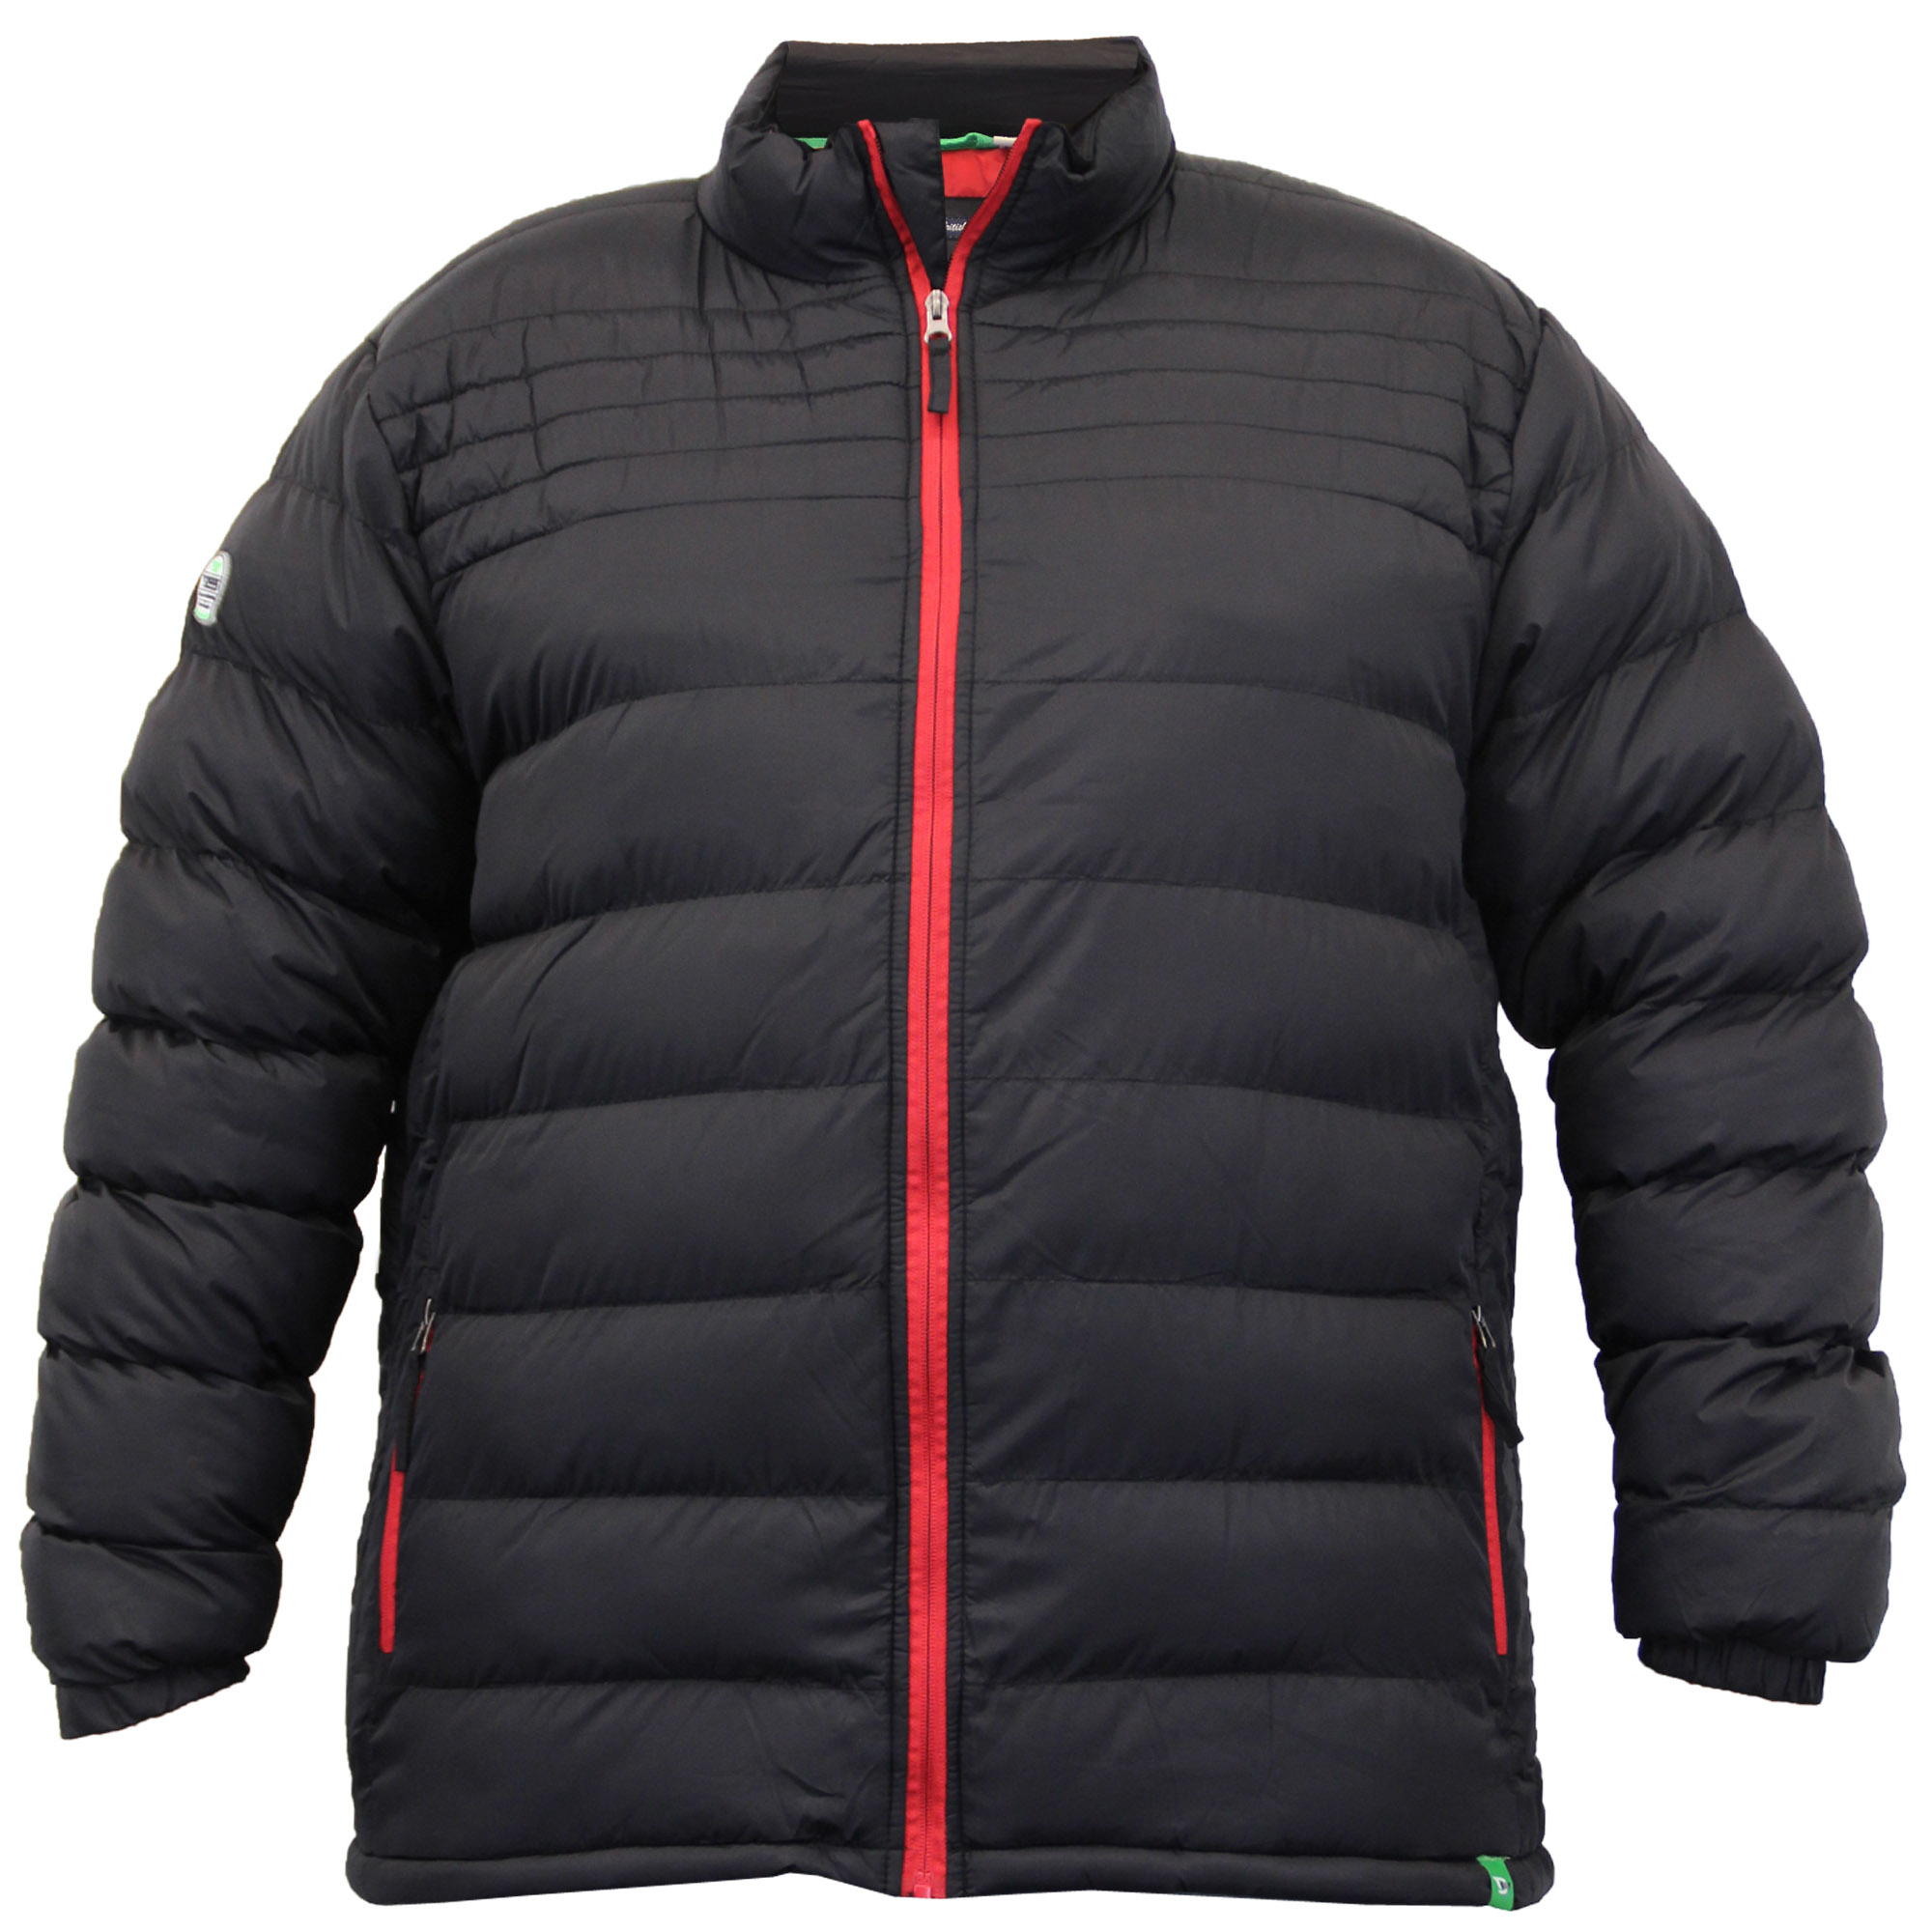 Mens Jacket D555 Duke Coat Big King Size Padded Quilted Bubble ...